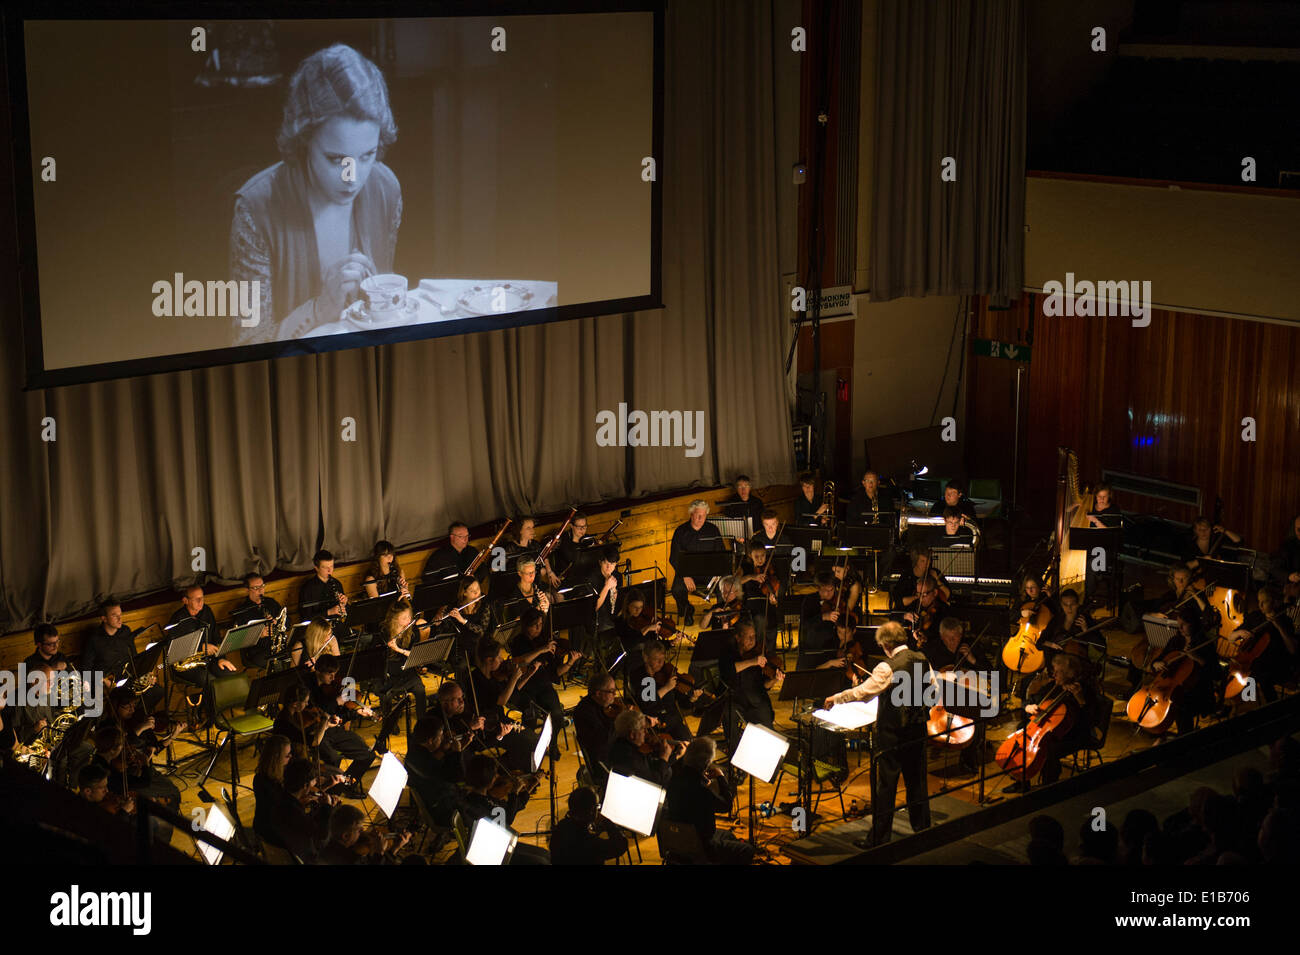 Silent Movie Stock Photos & Silent Movie Stock Images - Alamy